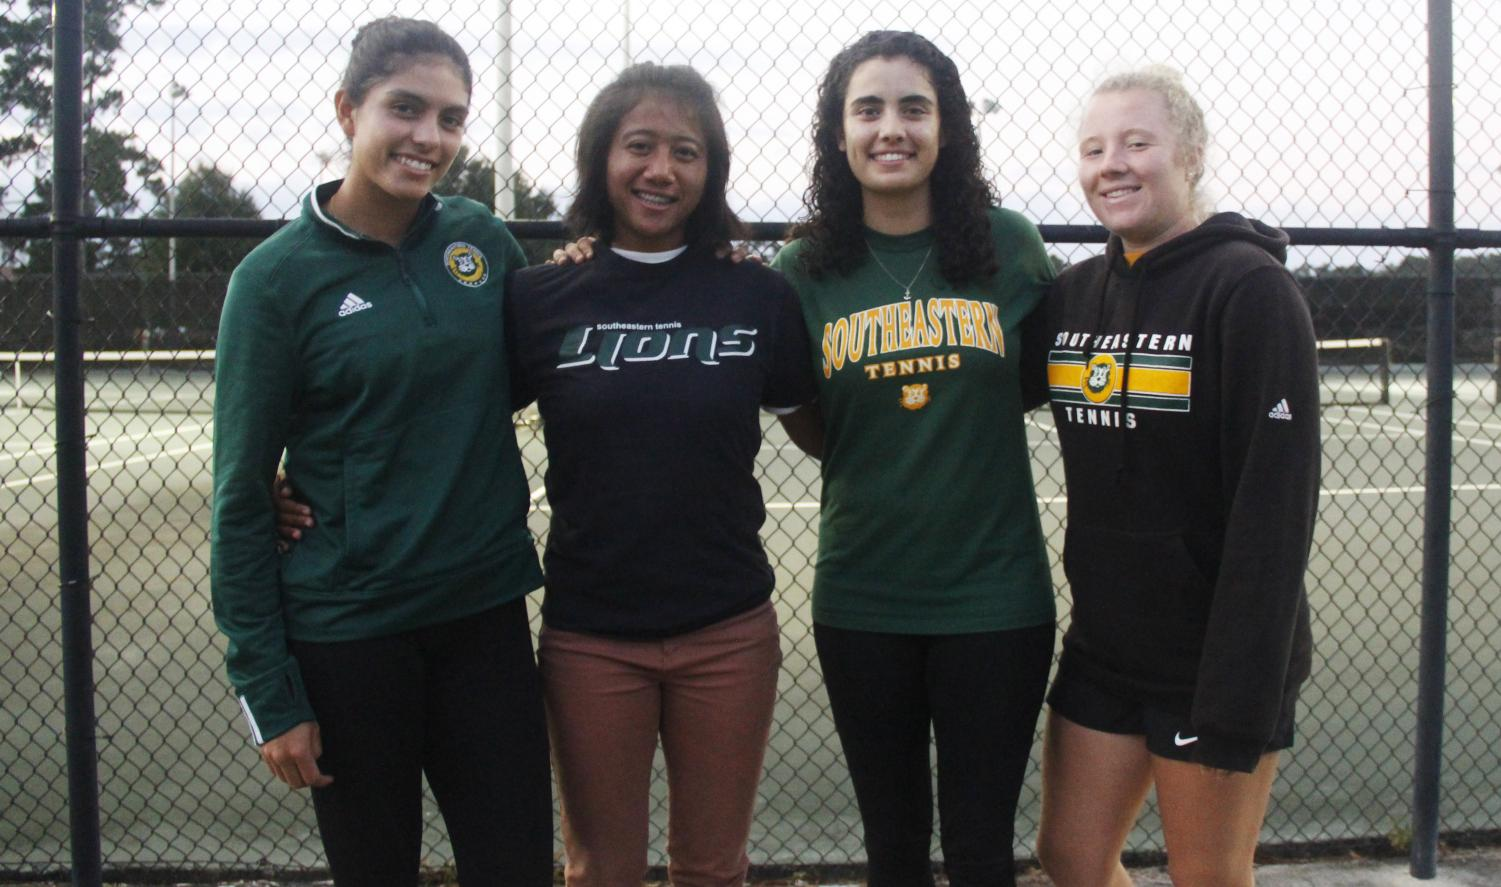 Katya Cornejo, Putri Insani, Ximena Yanez and Bernadette Dornieden are international student-athletes on the tennis team. They enjoy the motivation they receive from their head coach.